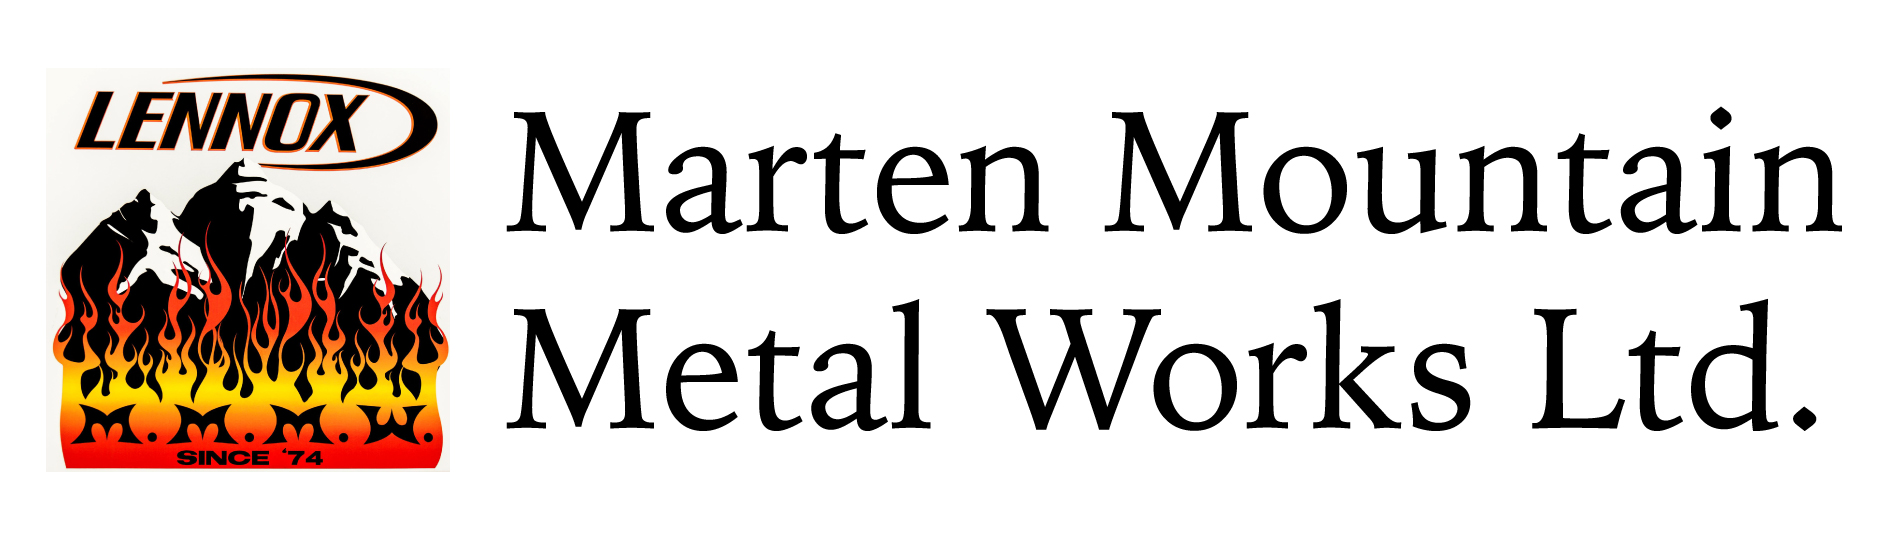 Marten Mountain Metal Works Ltd.